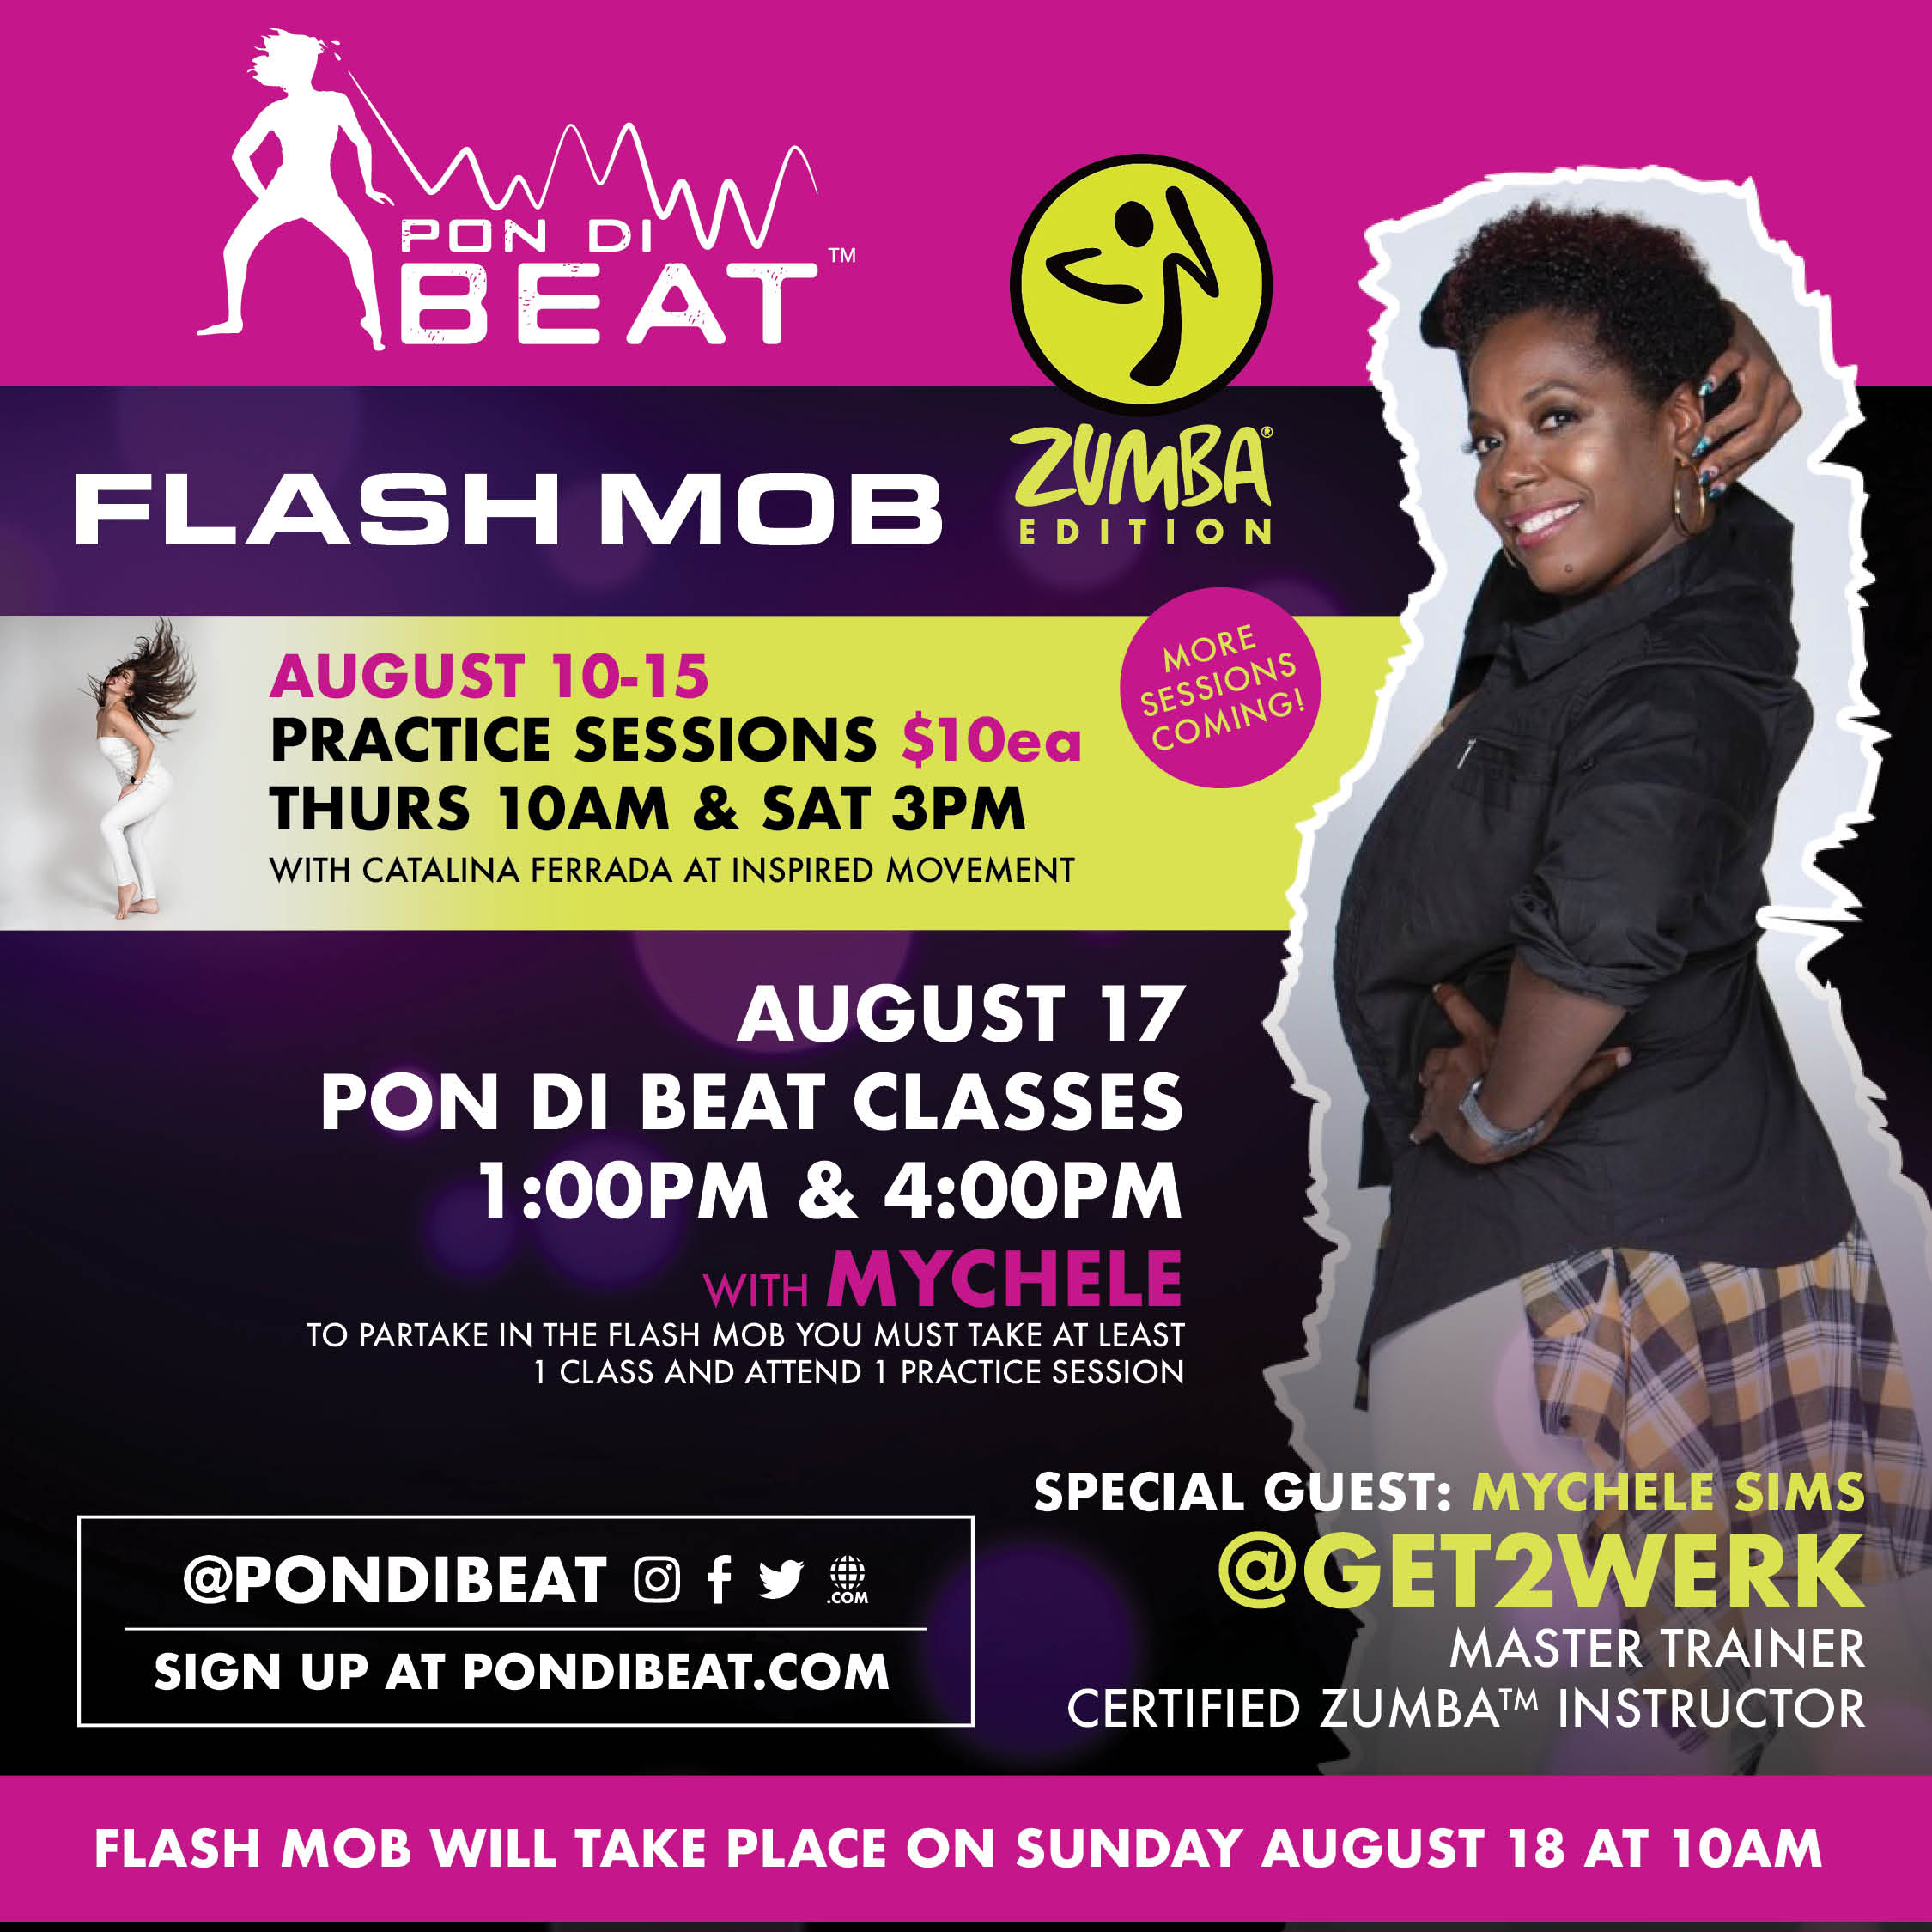 PDB-Flashmob-Aug18.jpg